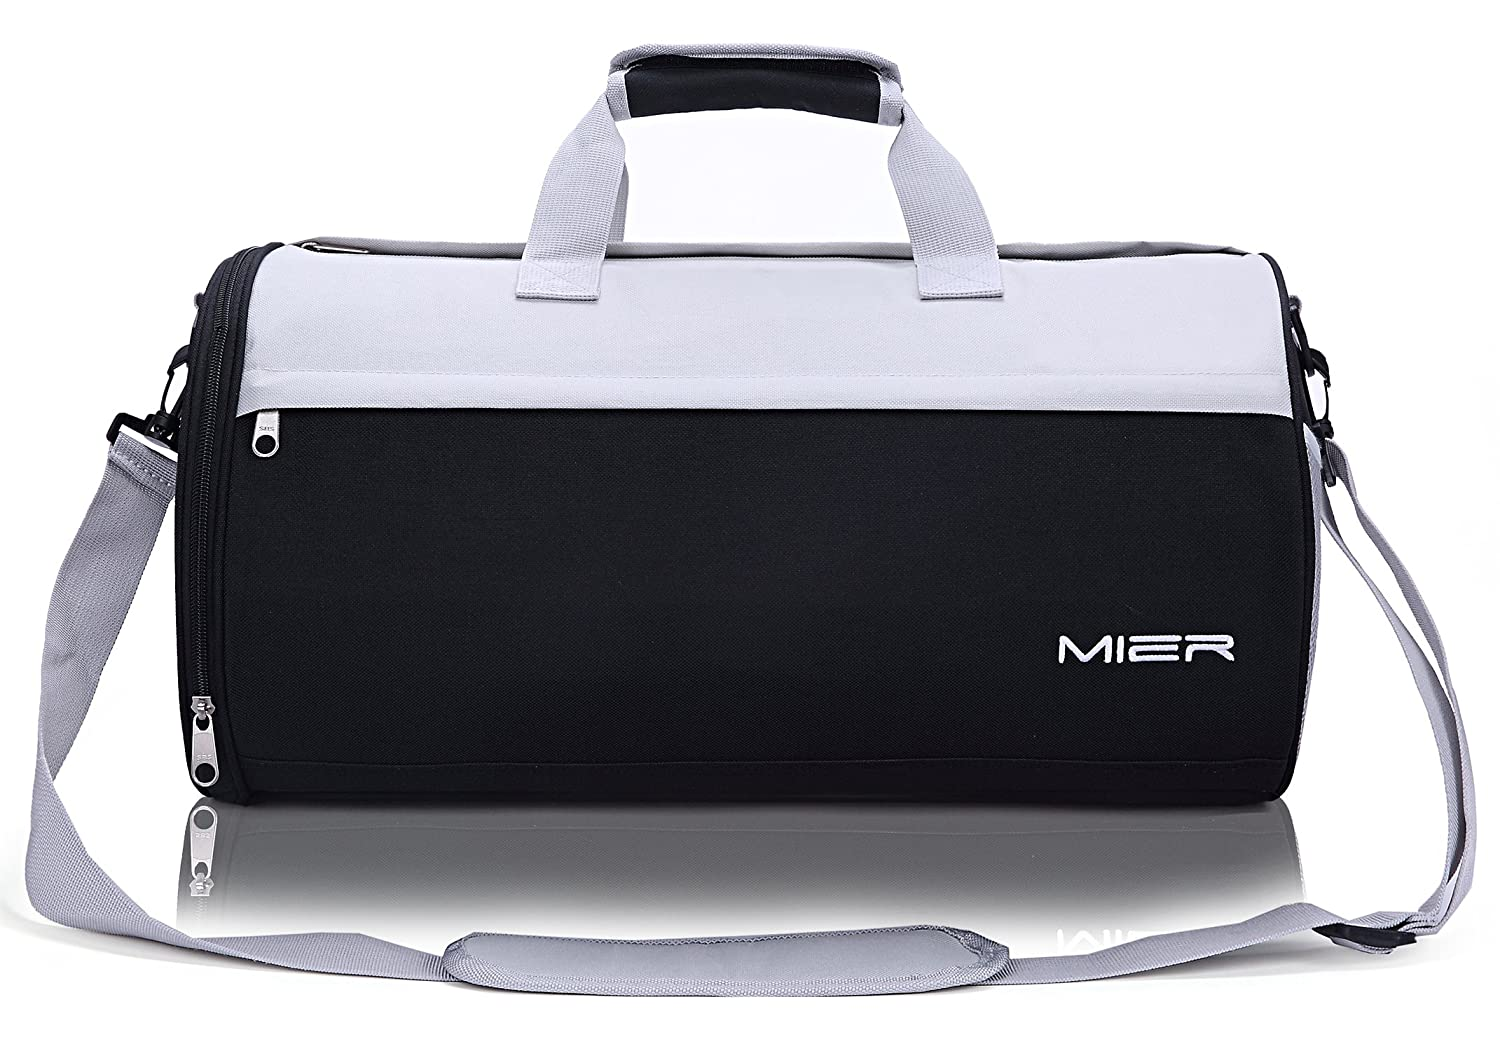 dfe7015582a2 MIER Barrel Travel Sports Bag for Women and Men Small Gym with Shoes  Compartment